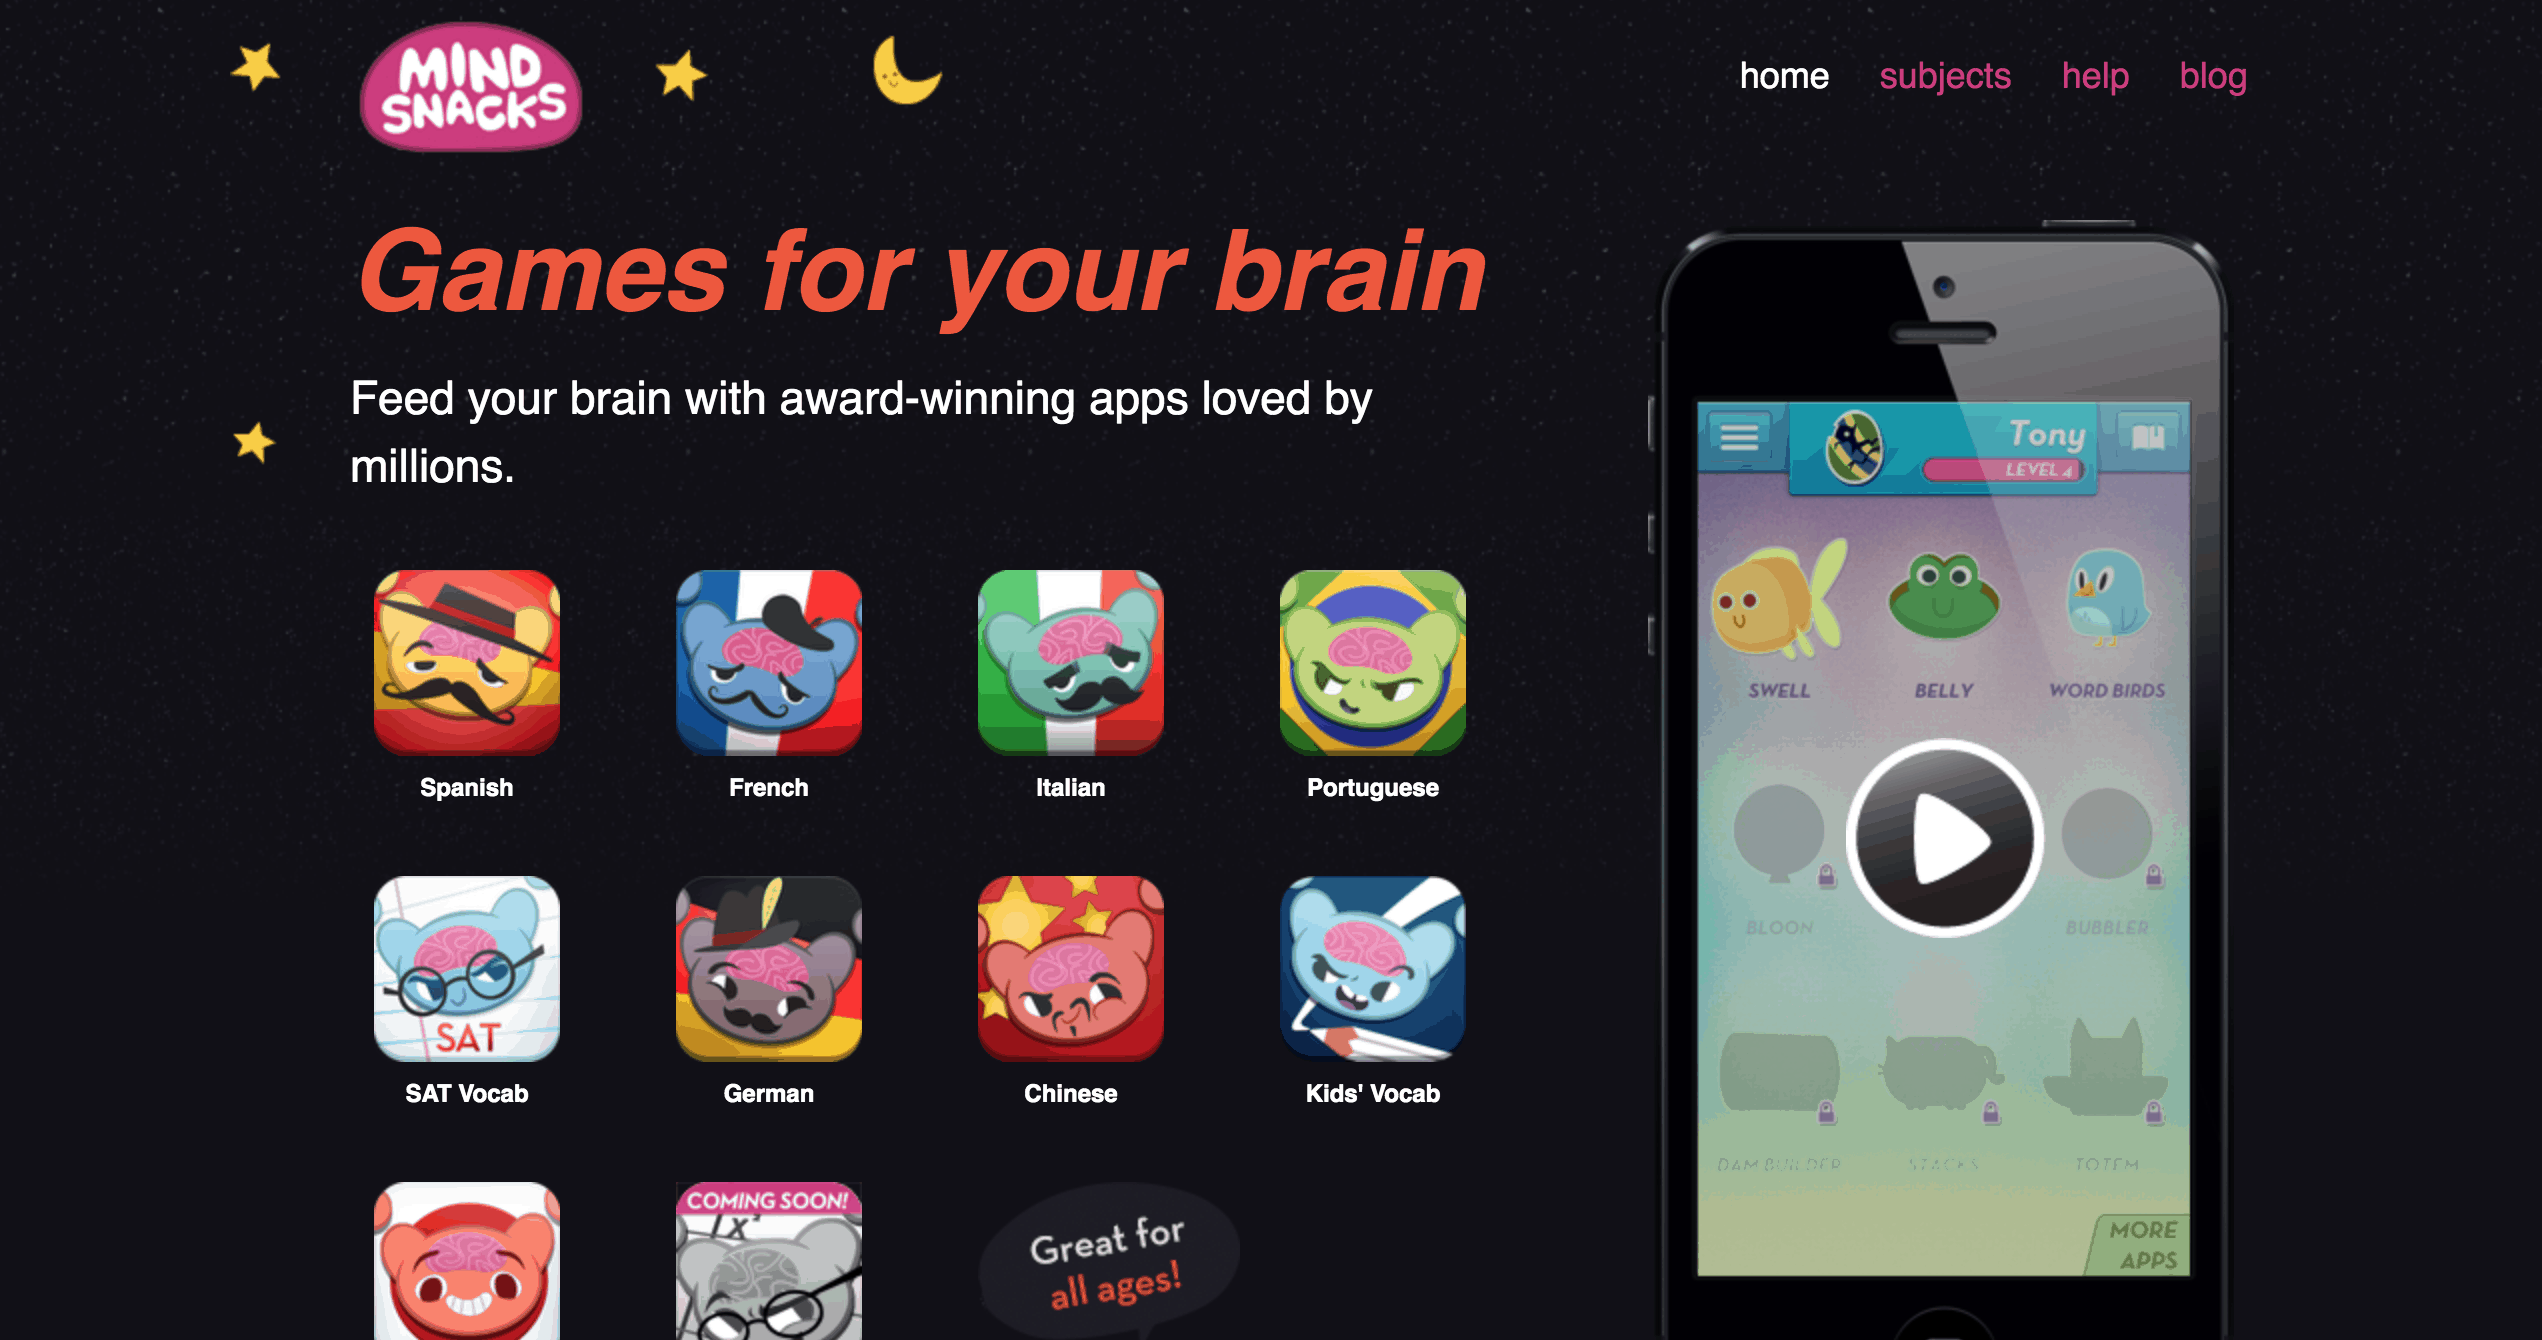 A black background with a black iPhone showing the app MindSnacks along with various colorful icons to the left of the iPhone.